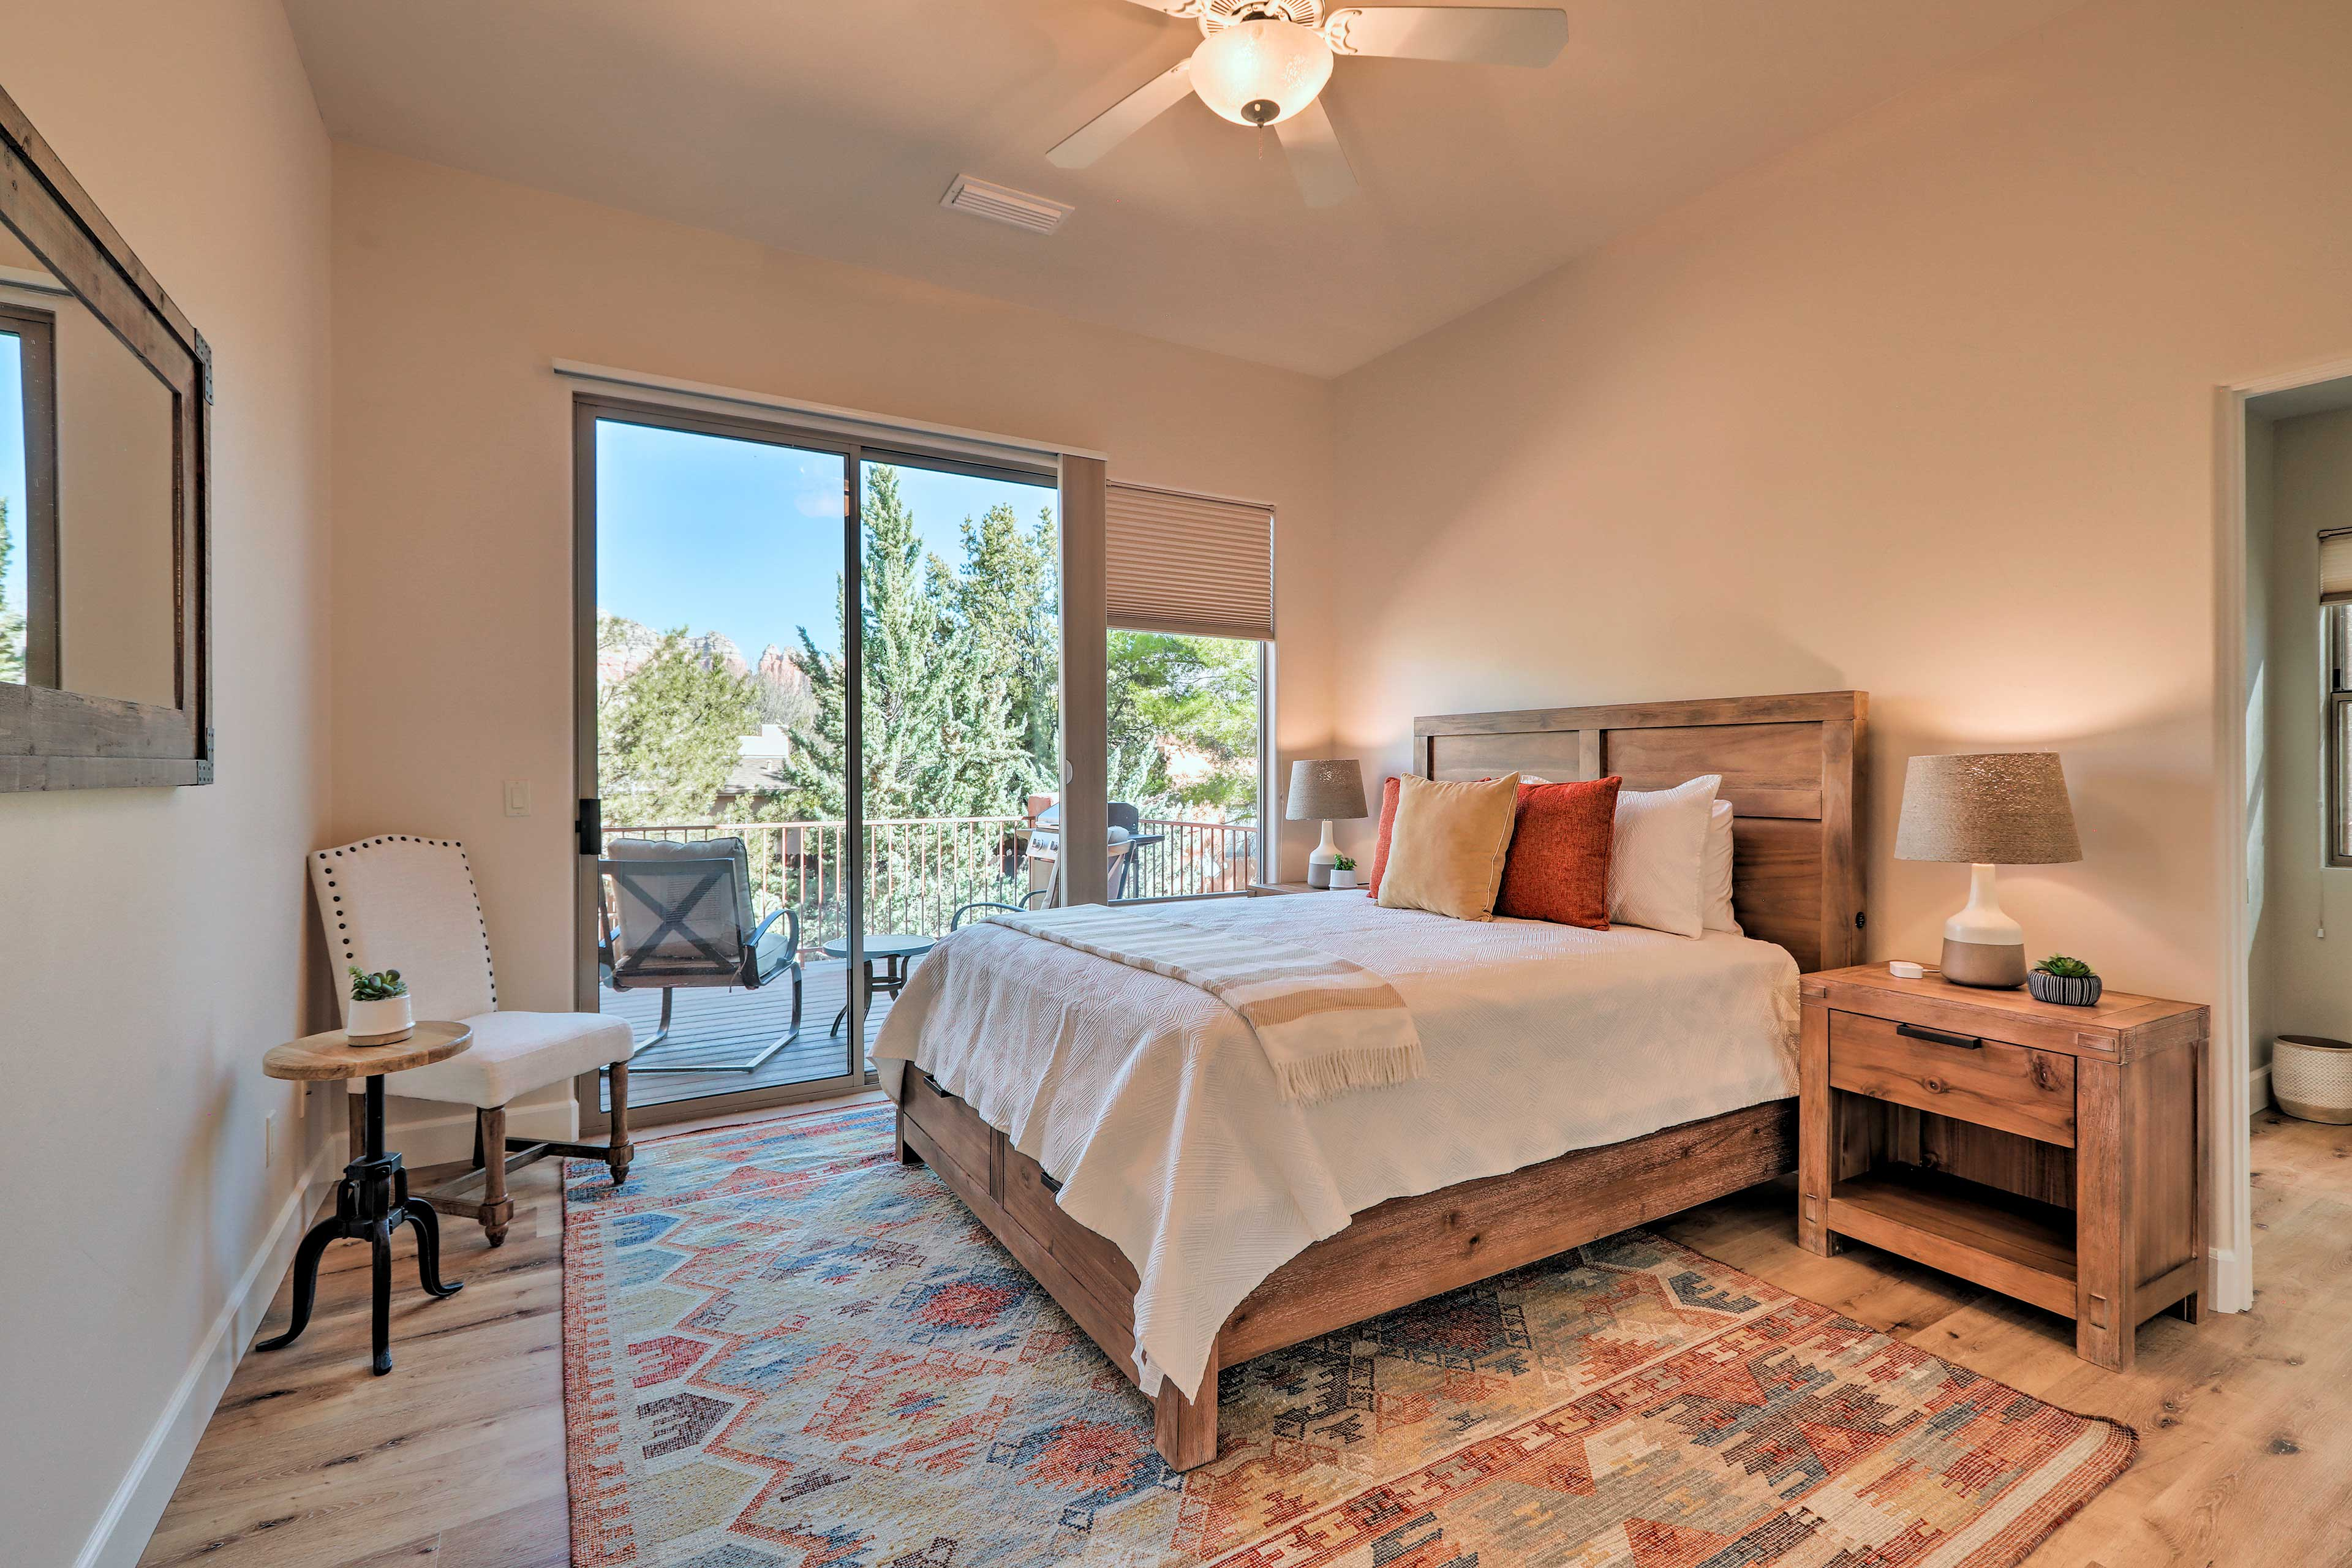 Southwestern decor spices up the neutral walls.